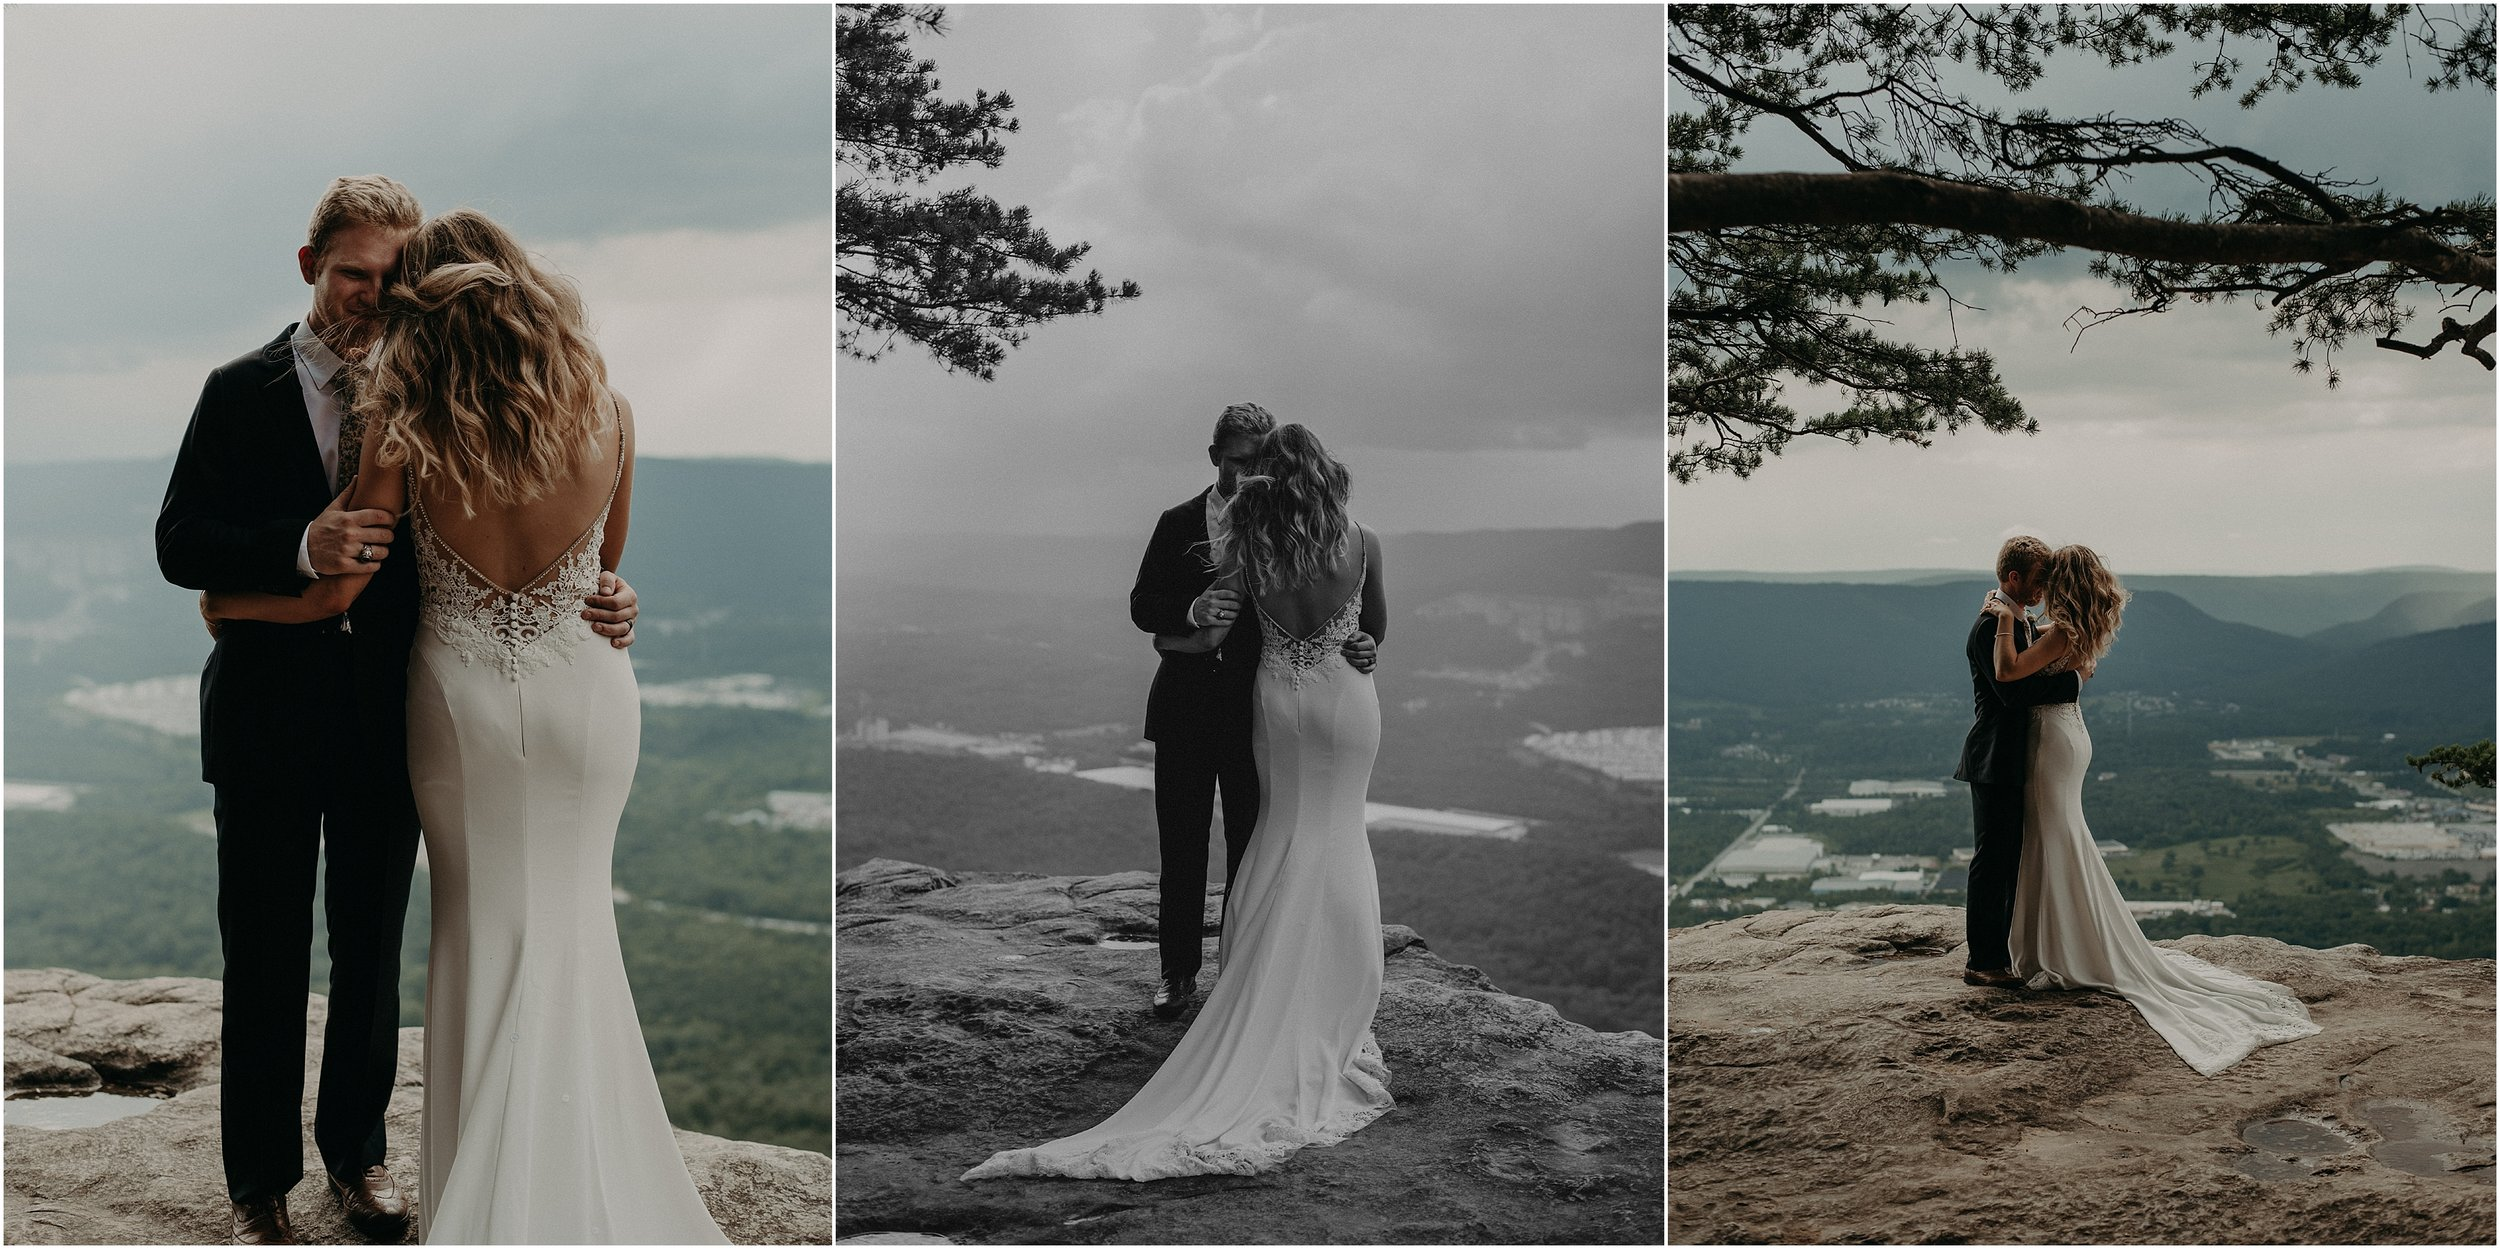 Bride and groom embrace each other on a moutain